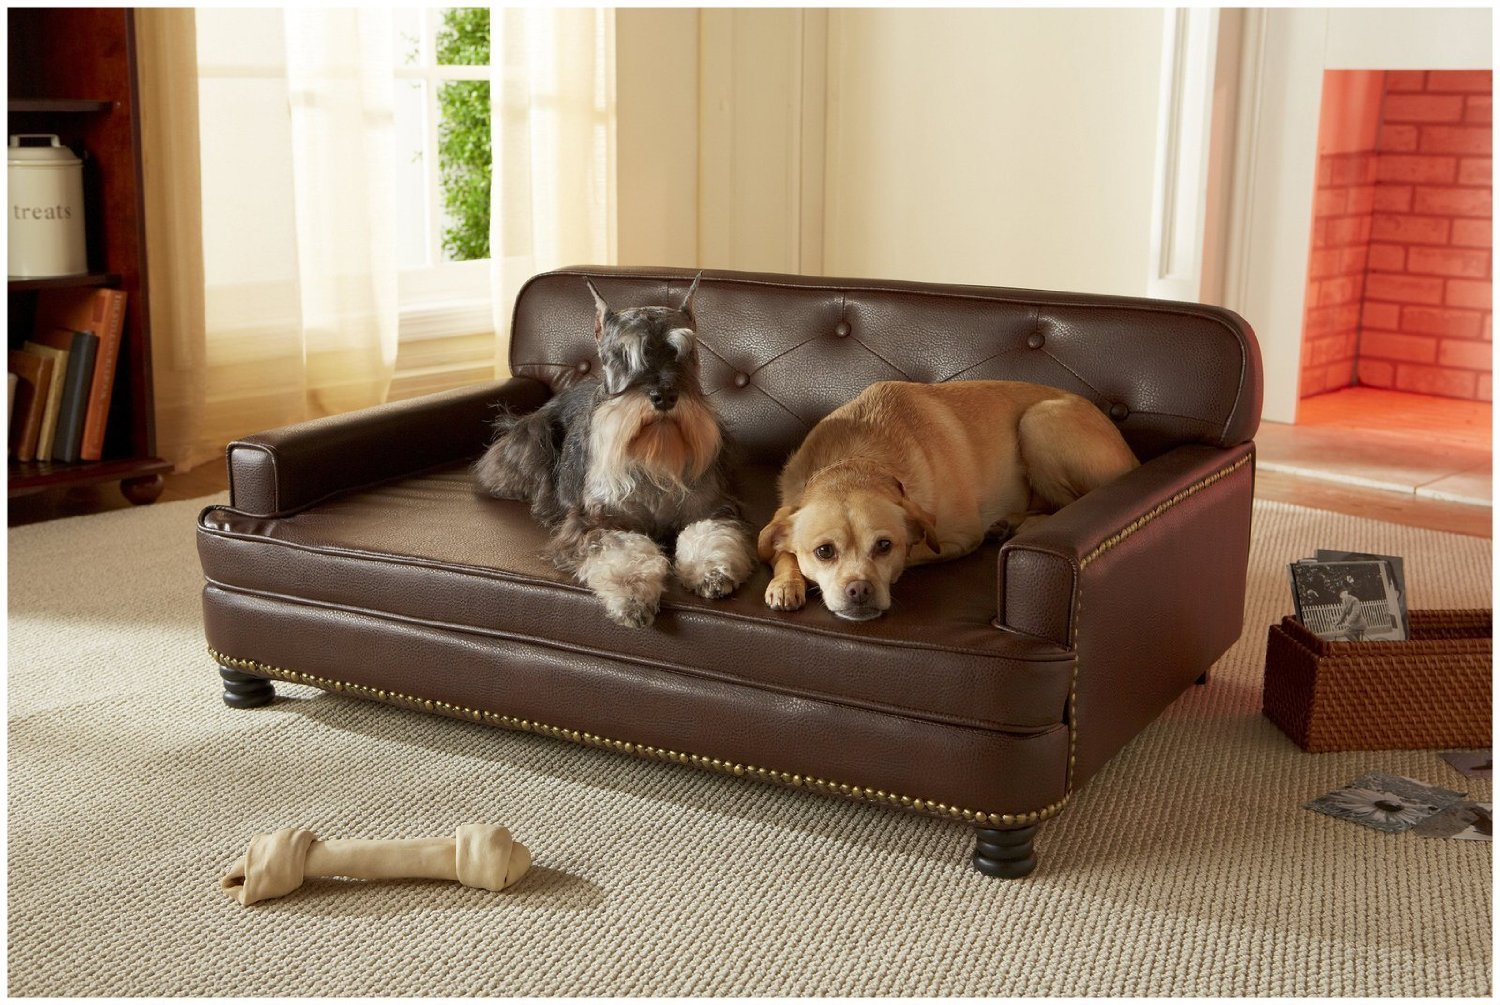 Total Fab: Luxury & Designer Dog Beds for Small and Large Dogs